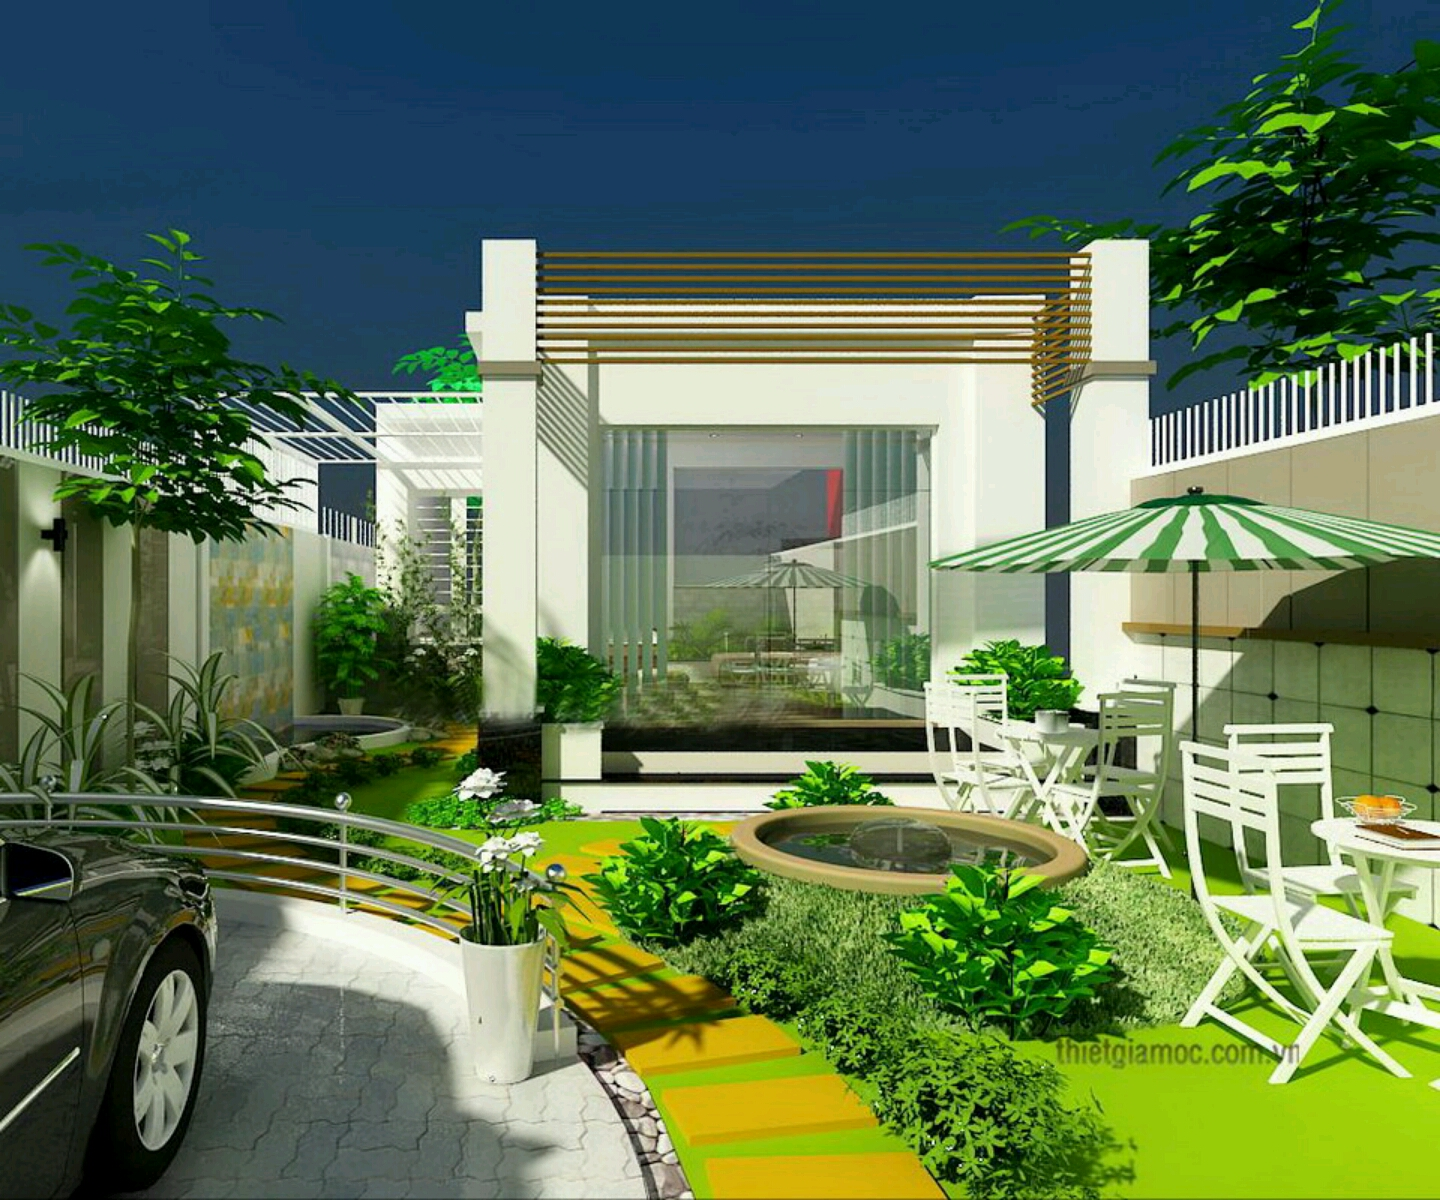 Home Design Ecological Ideas: Modern Homes Beautiful Garden Designs Ideas .